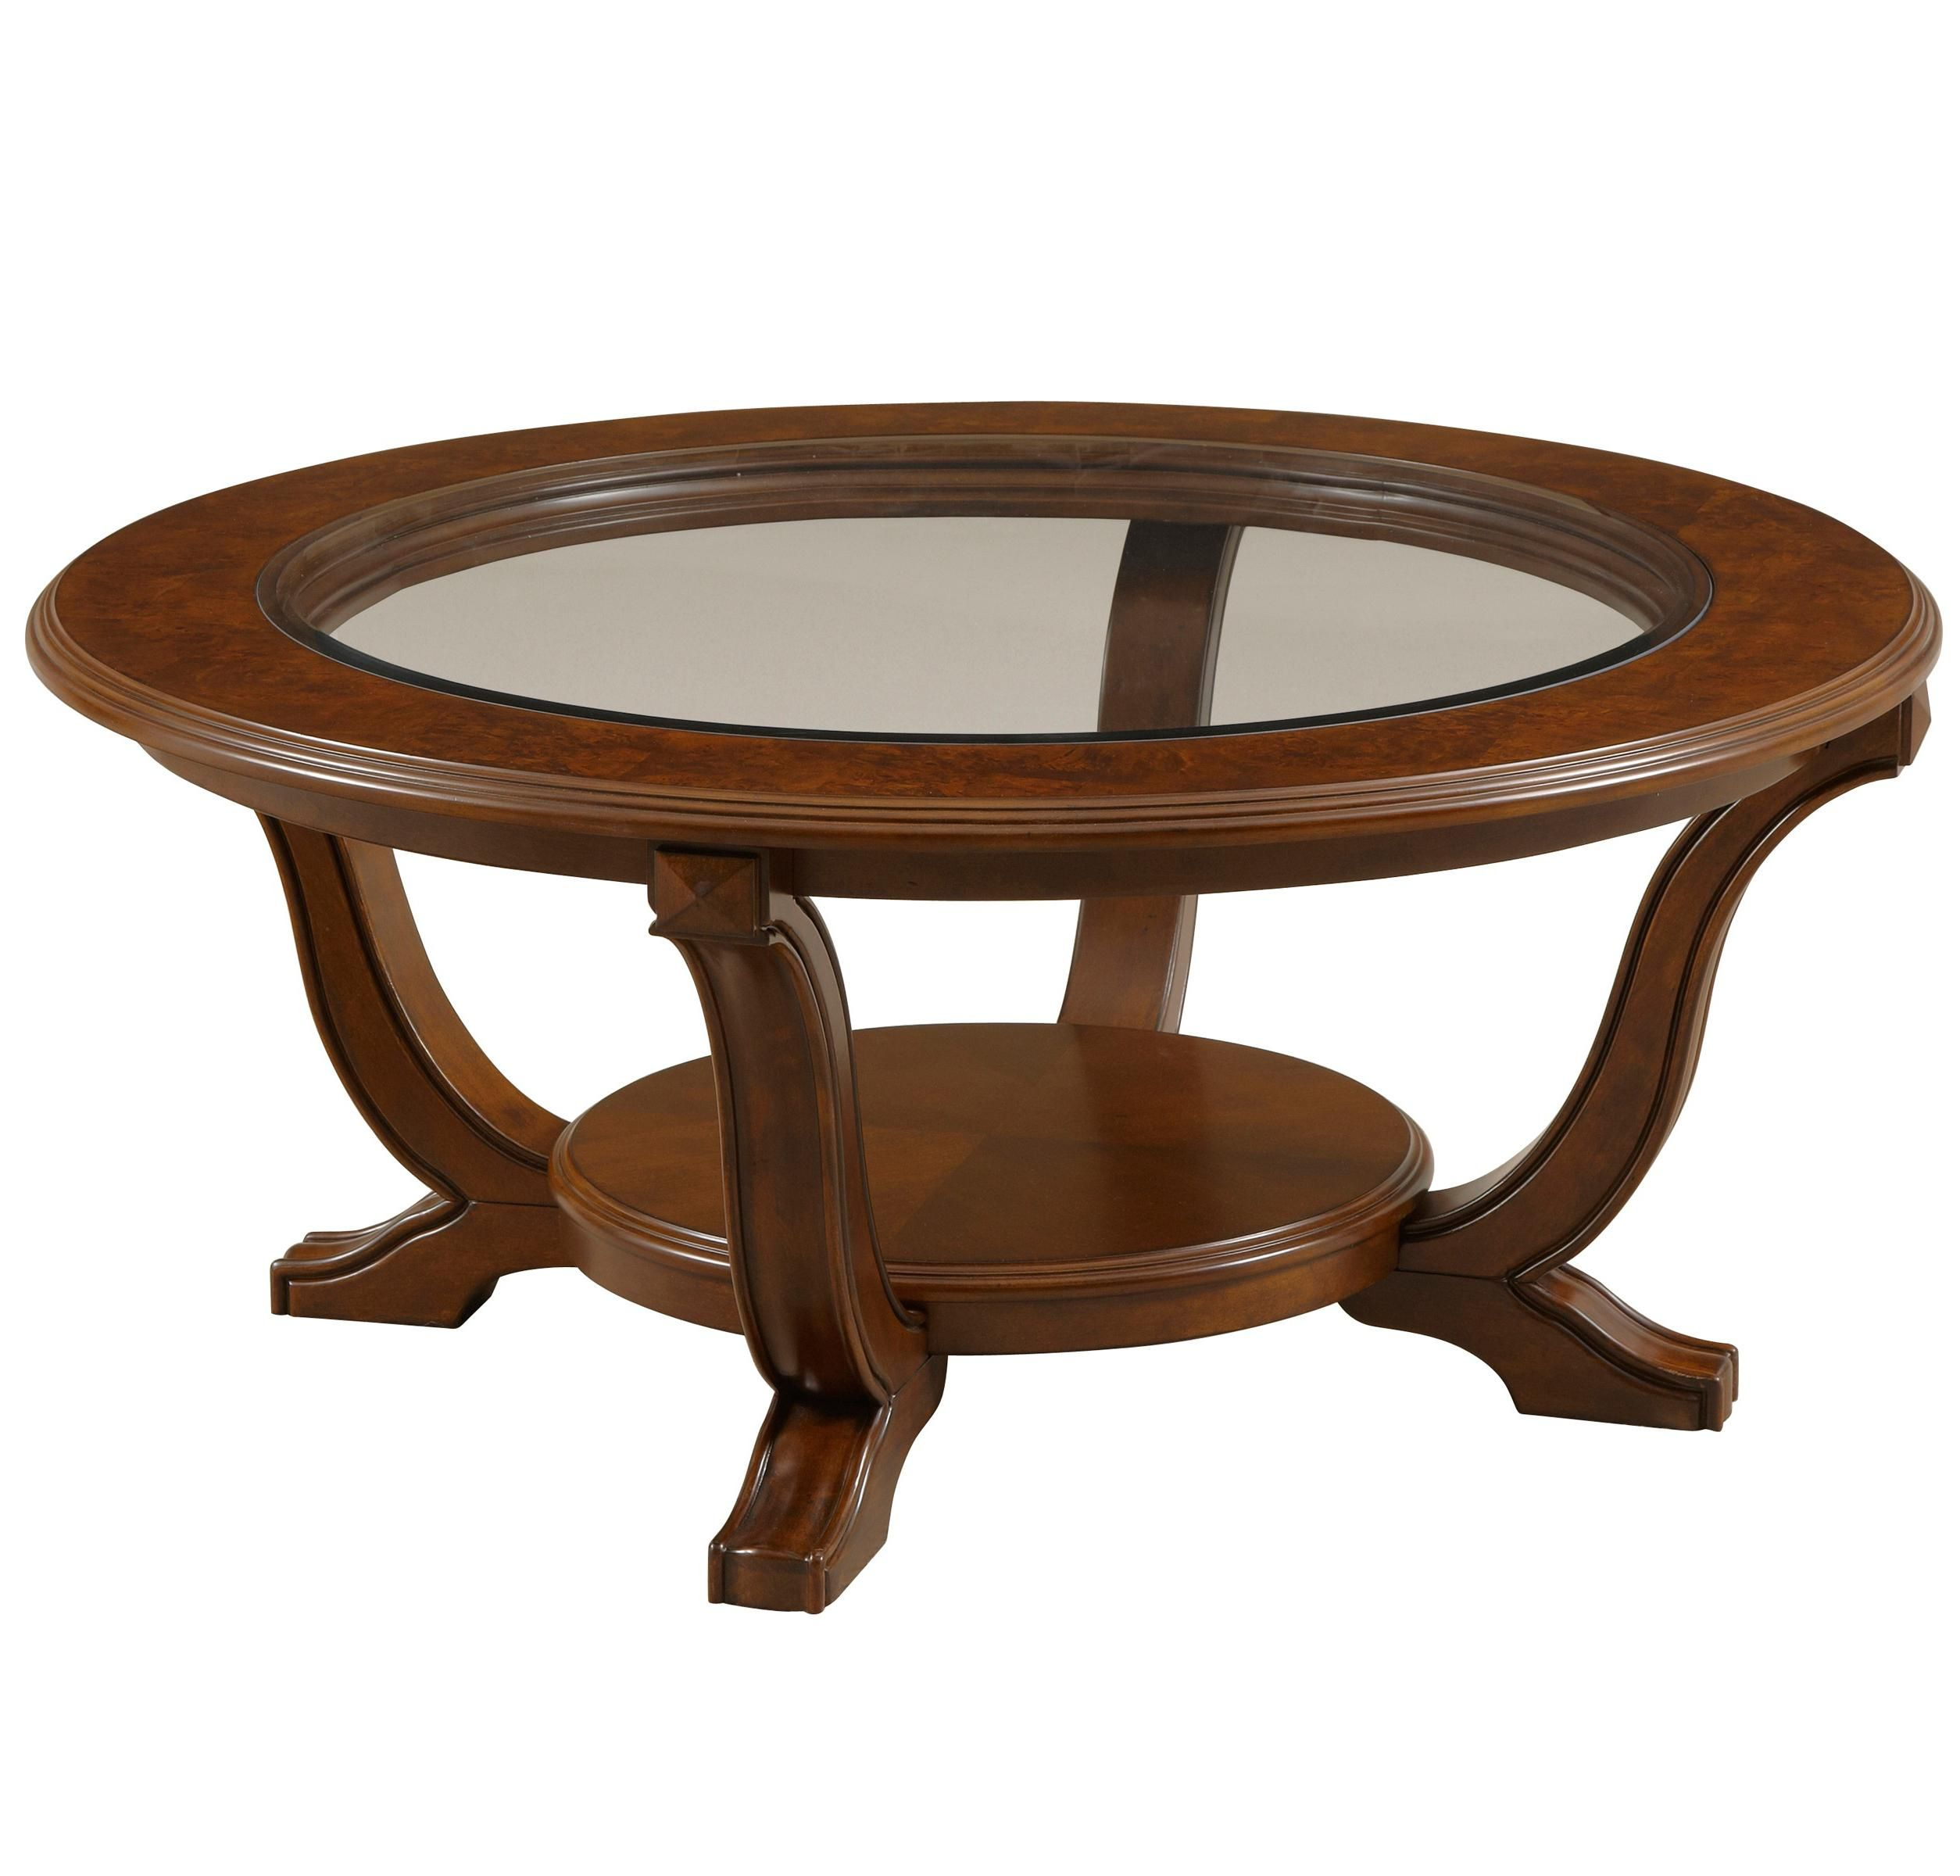 Lana Round Cocktail Table by Broyhill Furniture